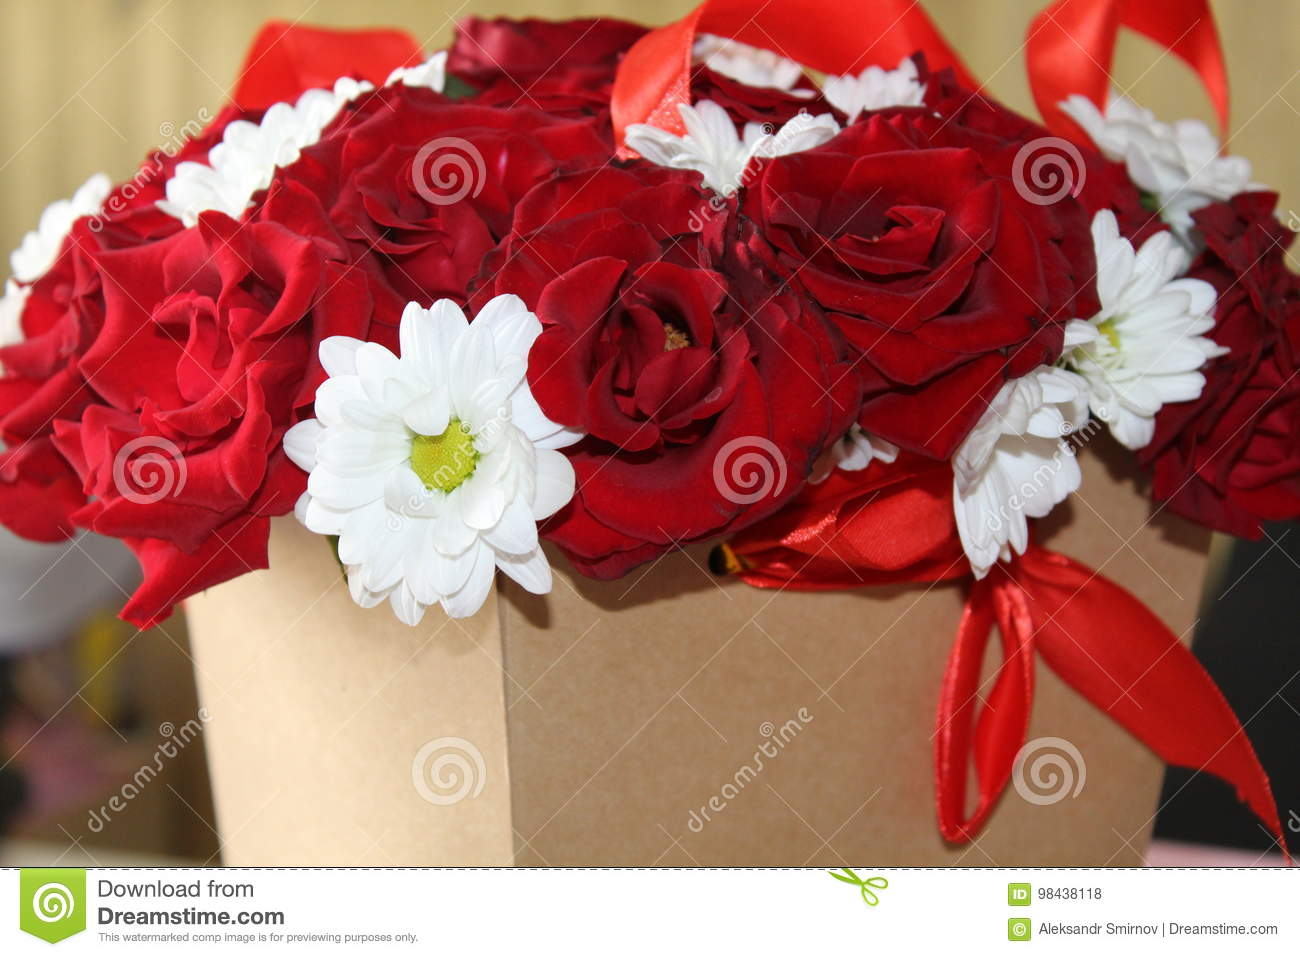 Beautiful flowers of a rose in a box stock photo image of luxury beautiful flowers of a rose in a box izmirmasajfo